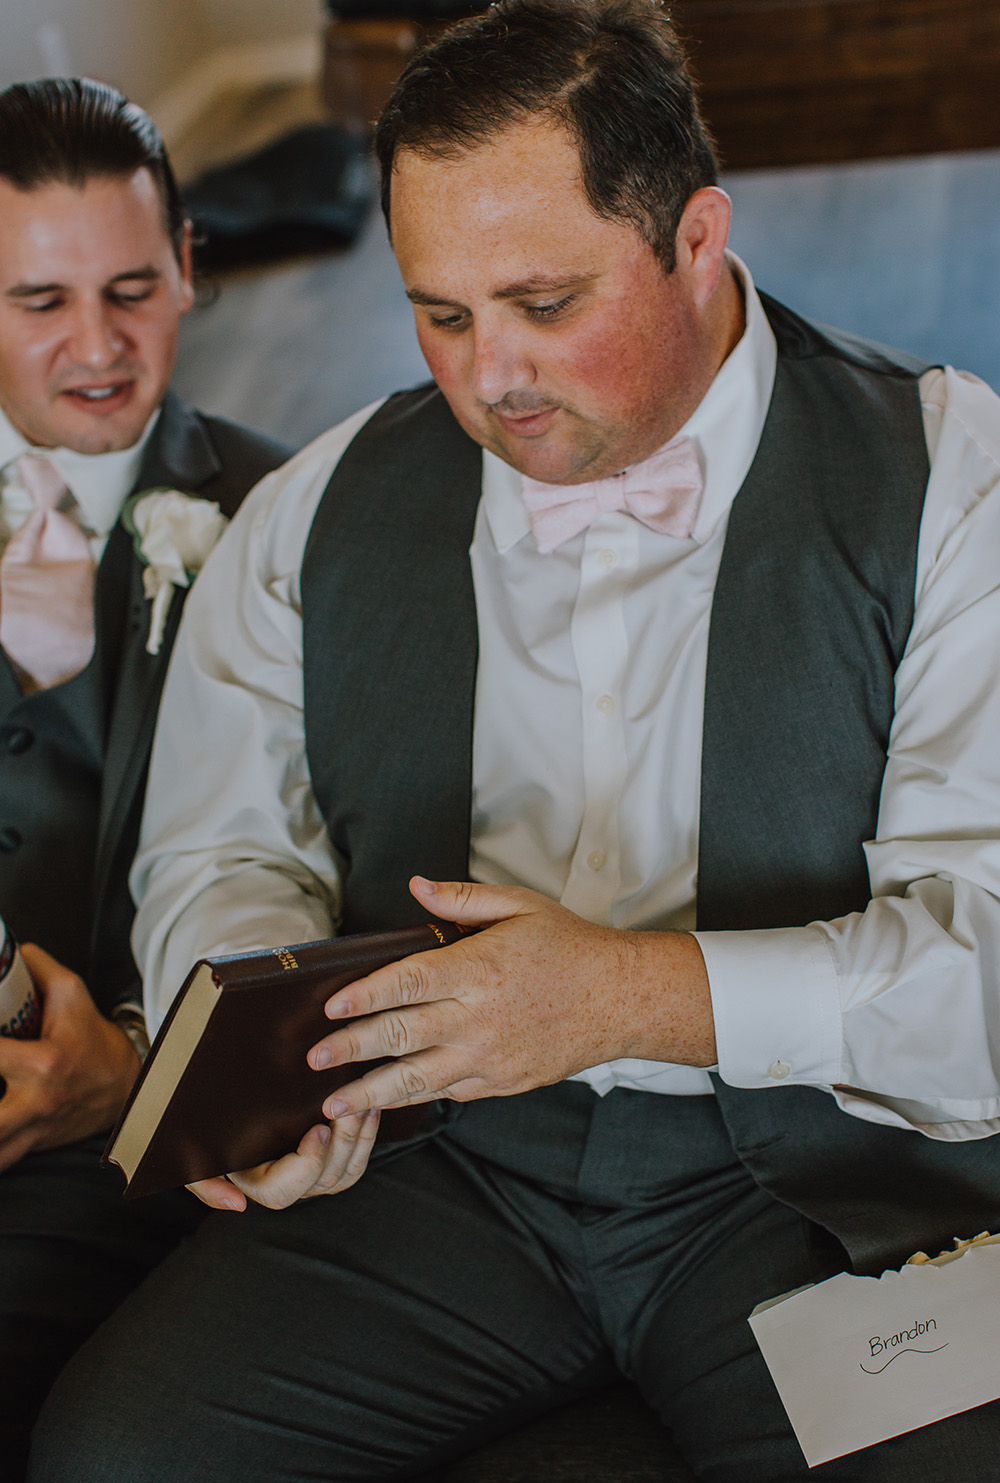 Groomsman Attire - The Grand Ivory Wedding - Leonard, Texas Wedding Venue